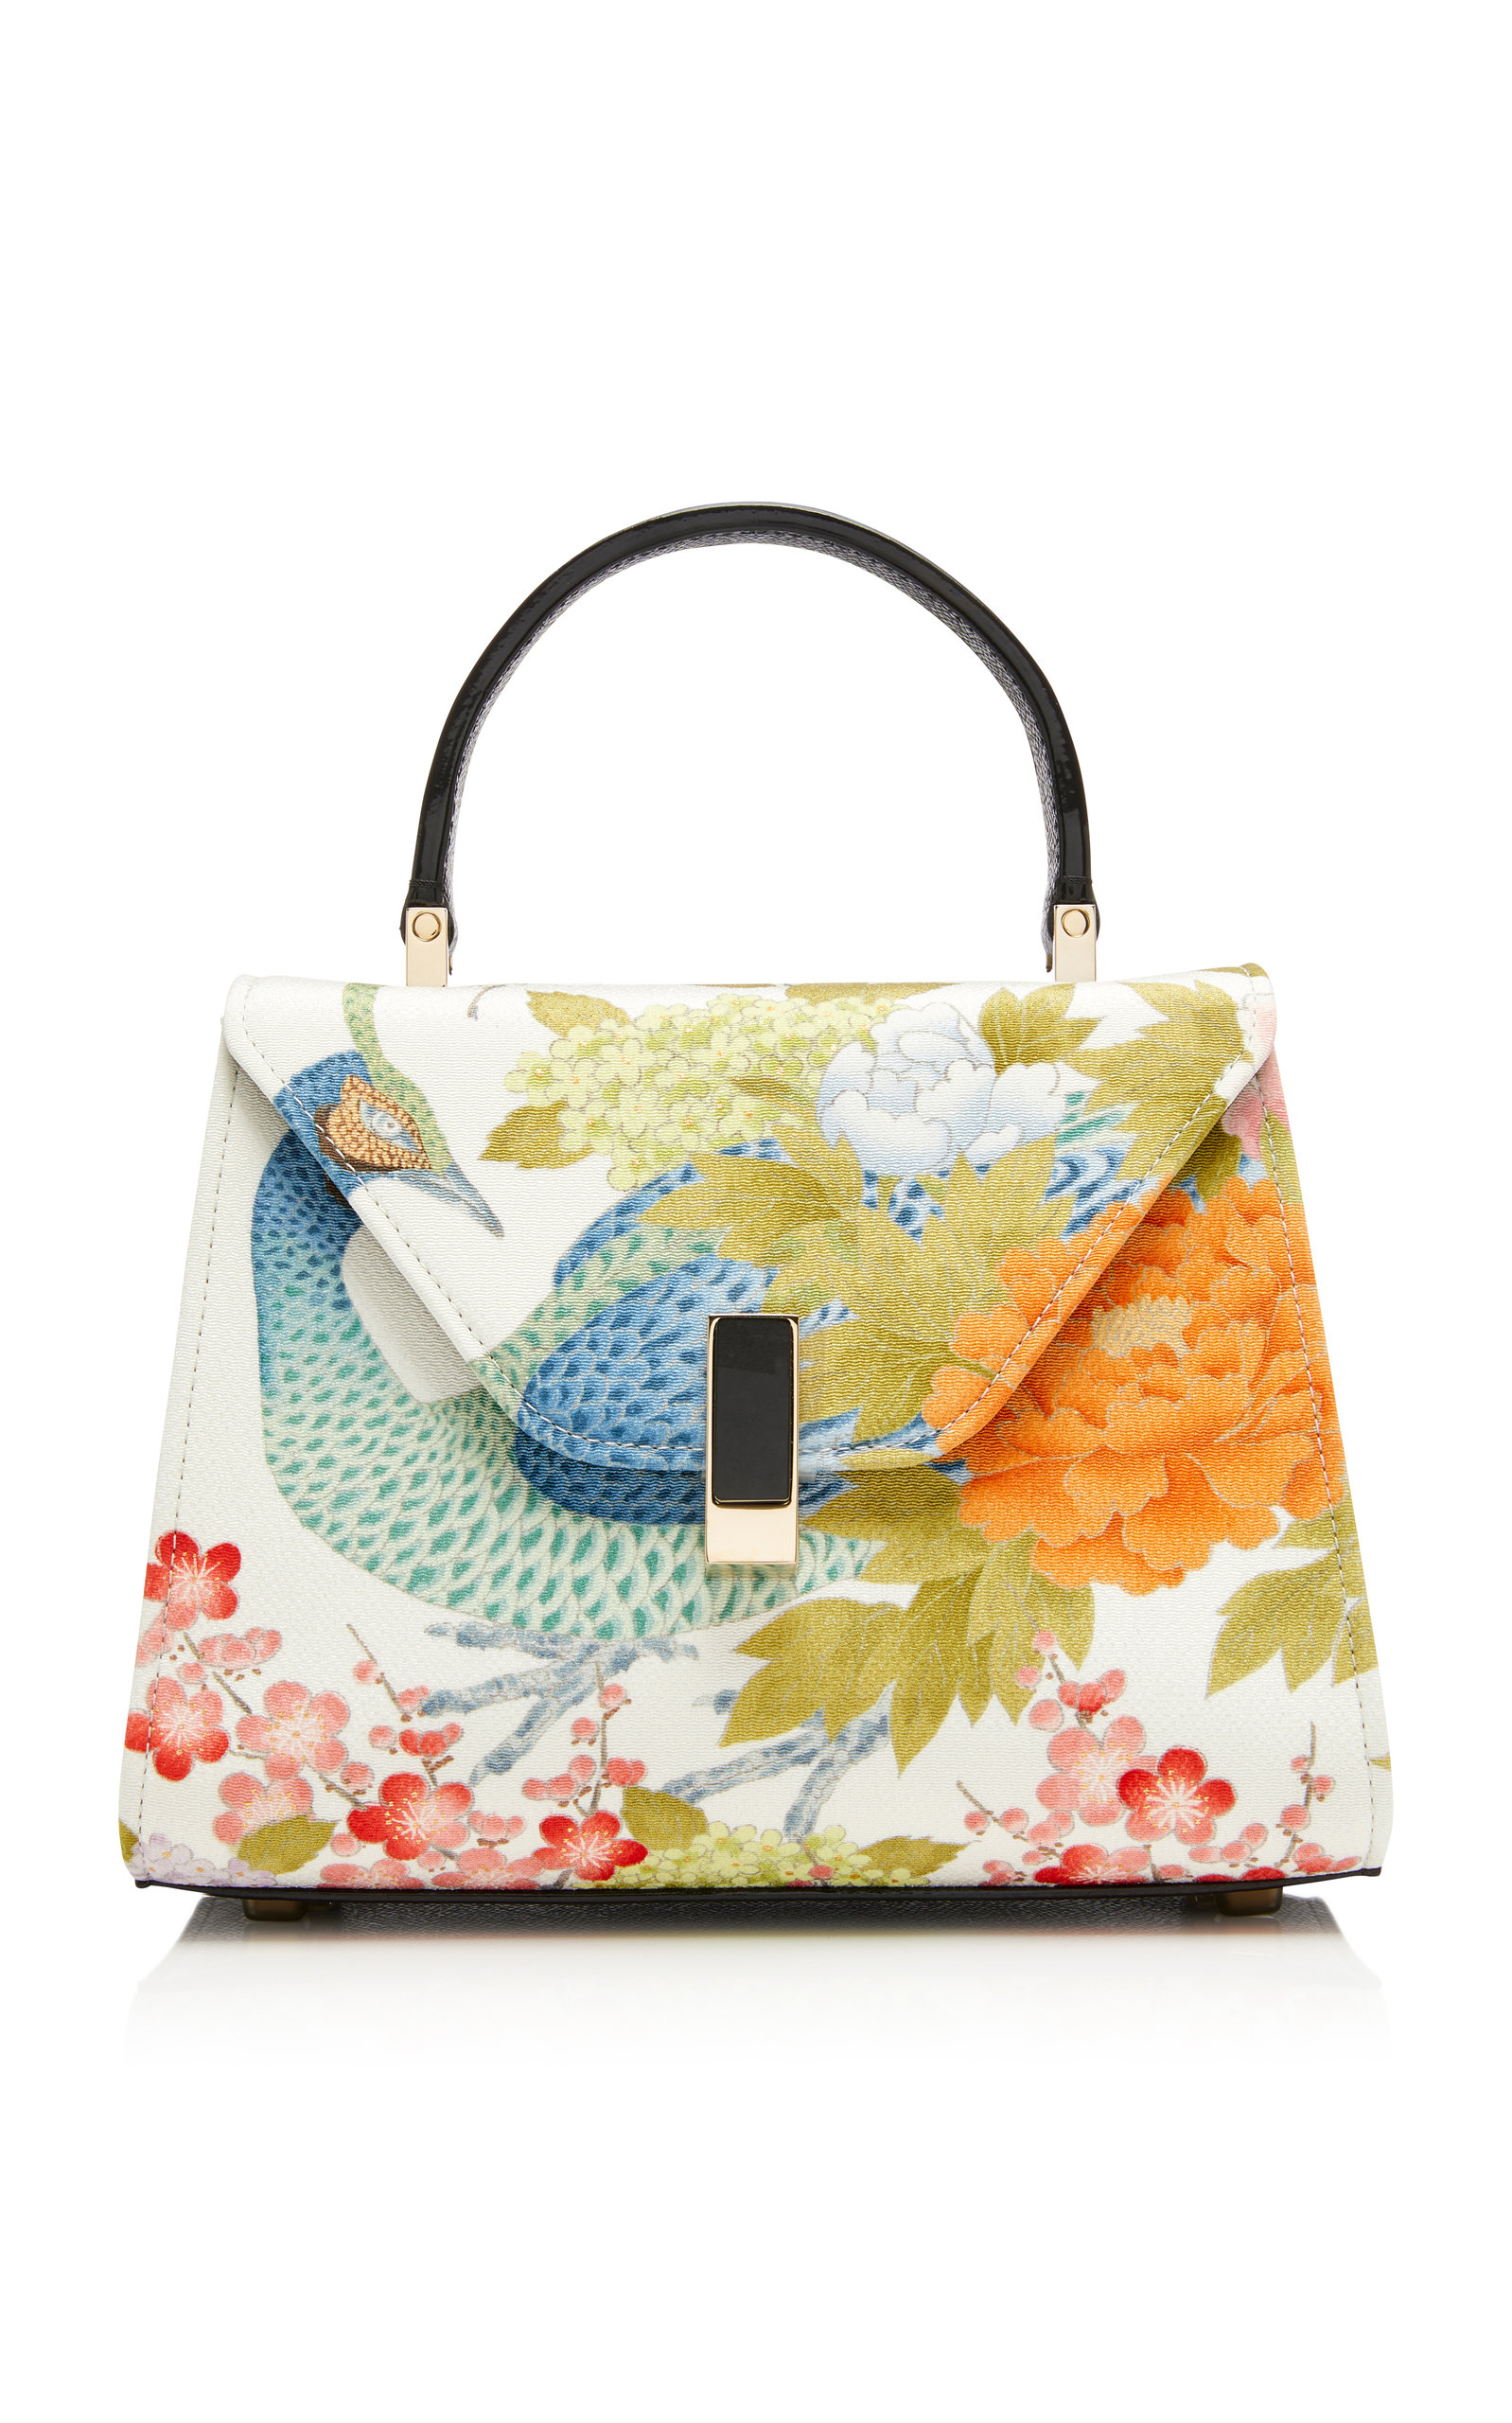 Mini Iside Kimono Bag Valextra For Sale Free Shipping Best Sale Online xFNf4F1yQ